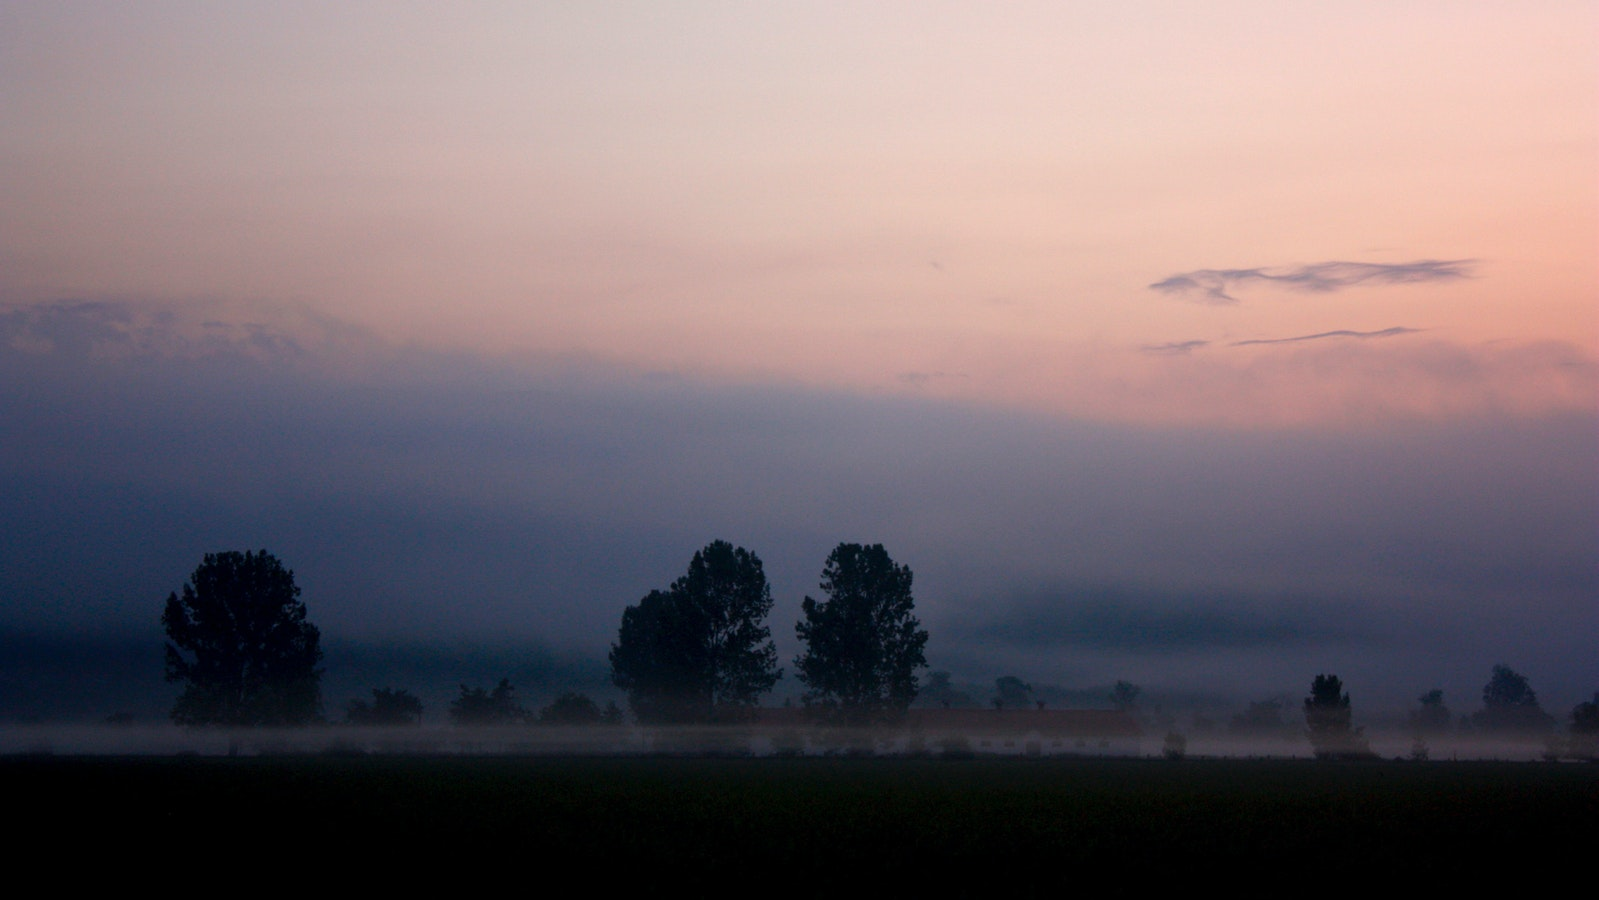 Your Morning Will Come: Trusting God in the Darkest Nights